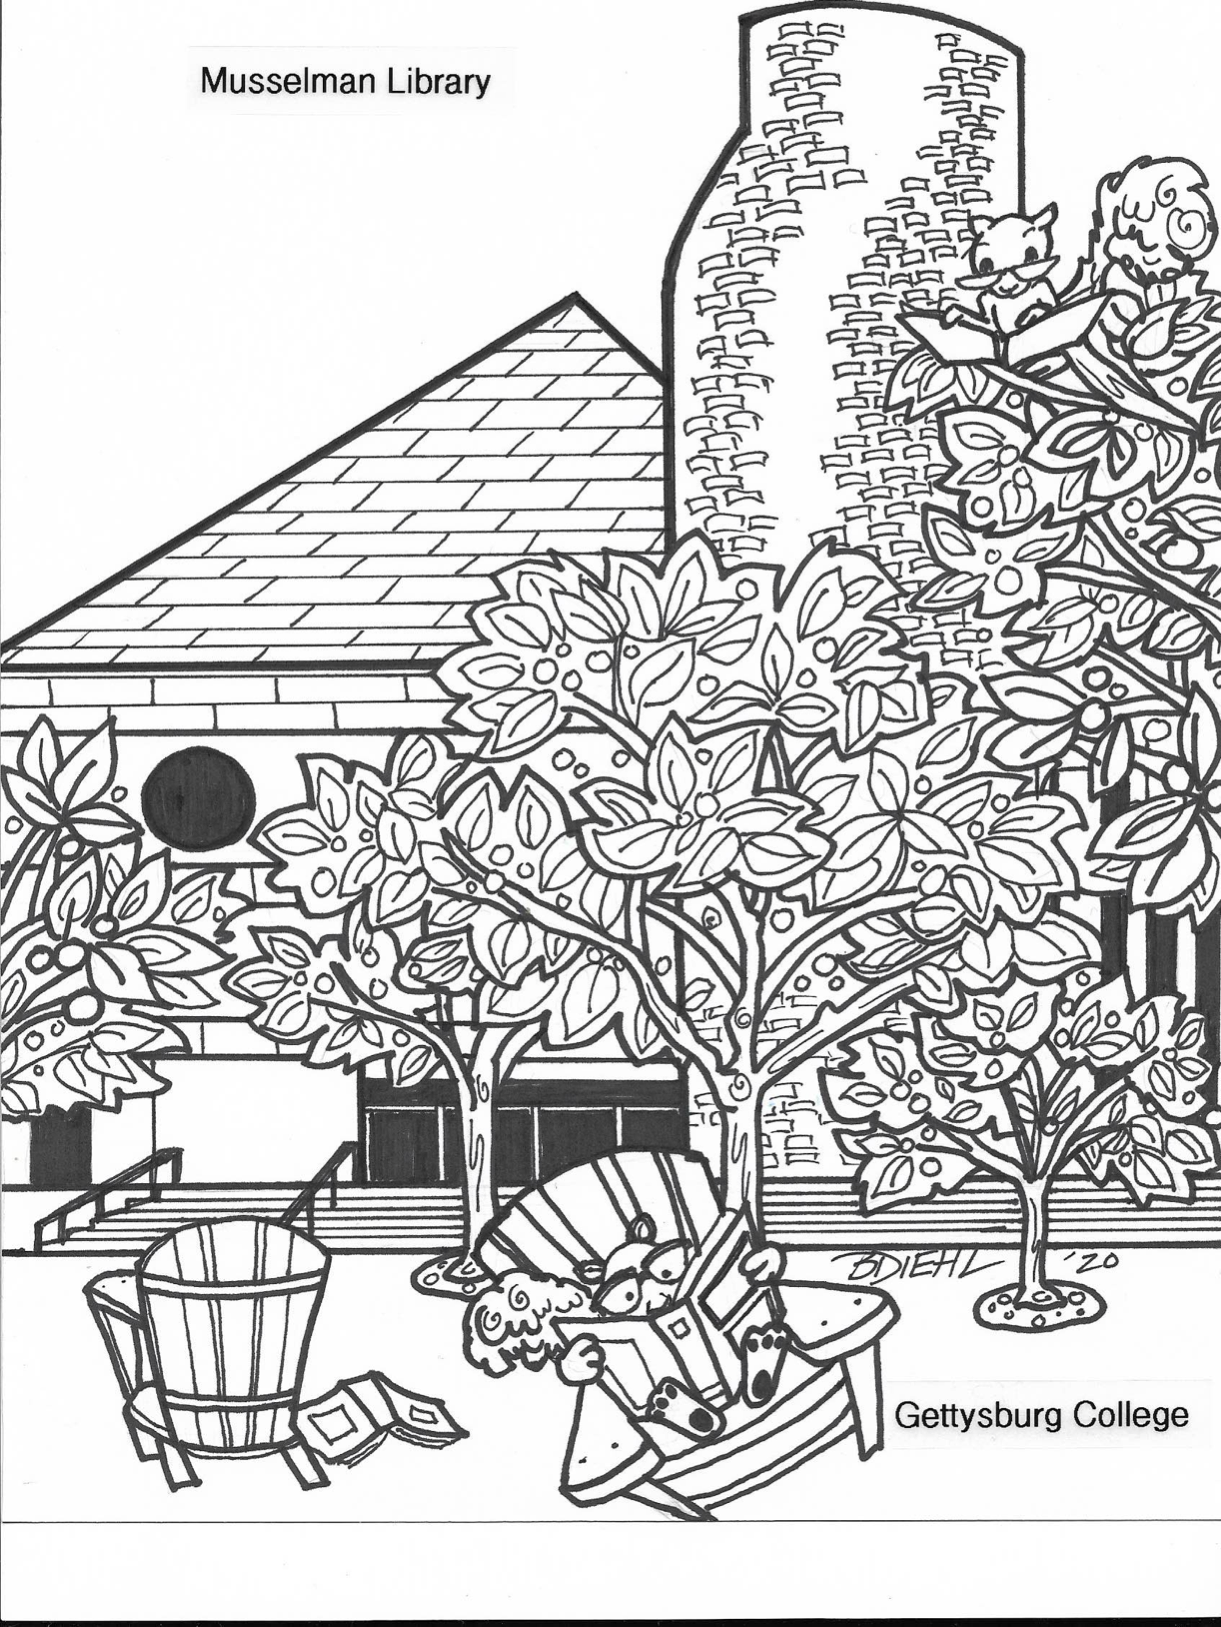 Hand-drawn image of squirrels outside of Musselman Library